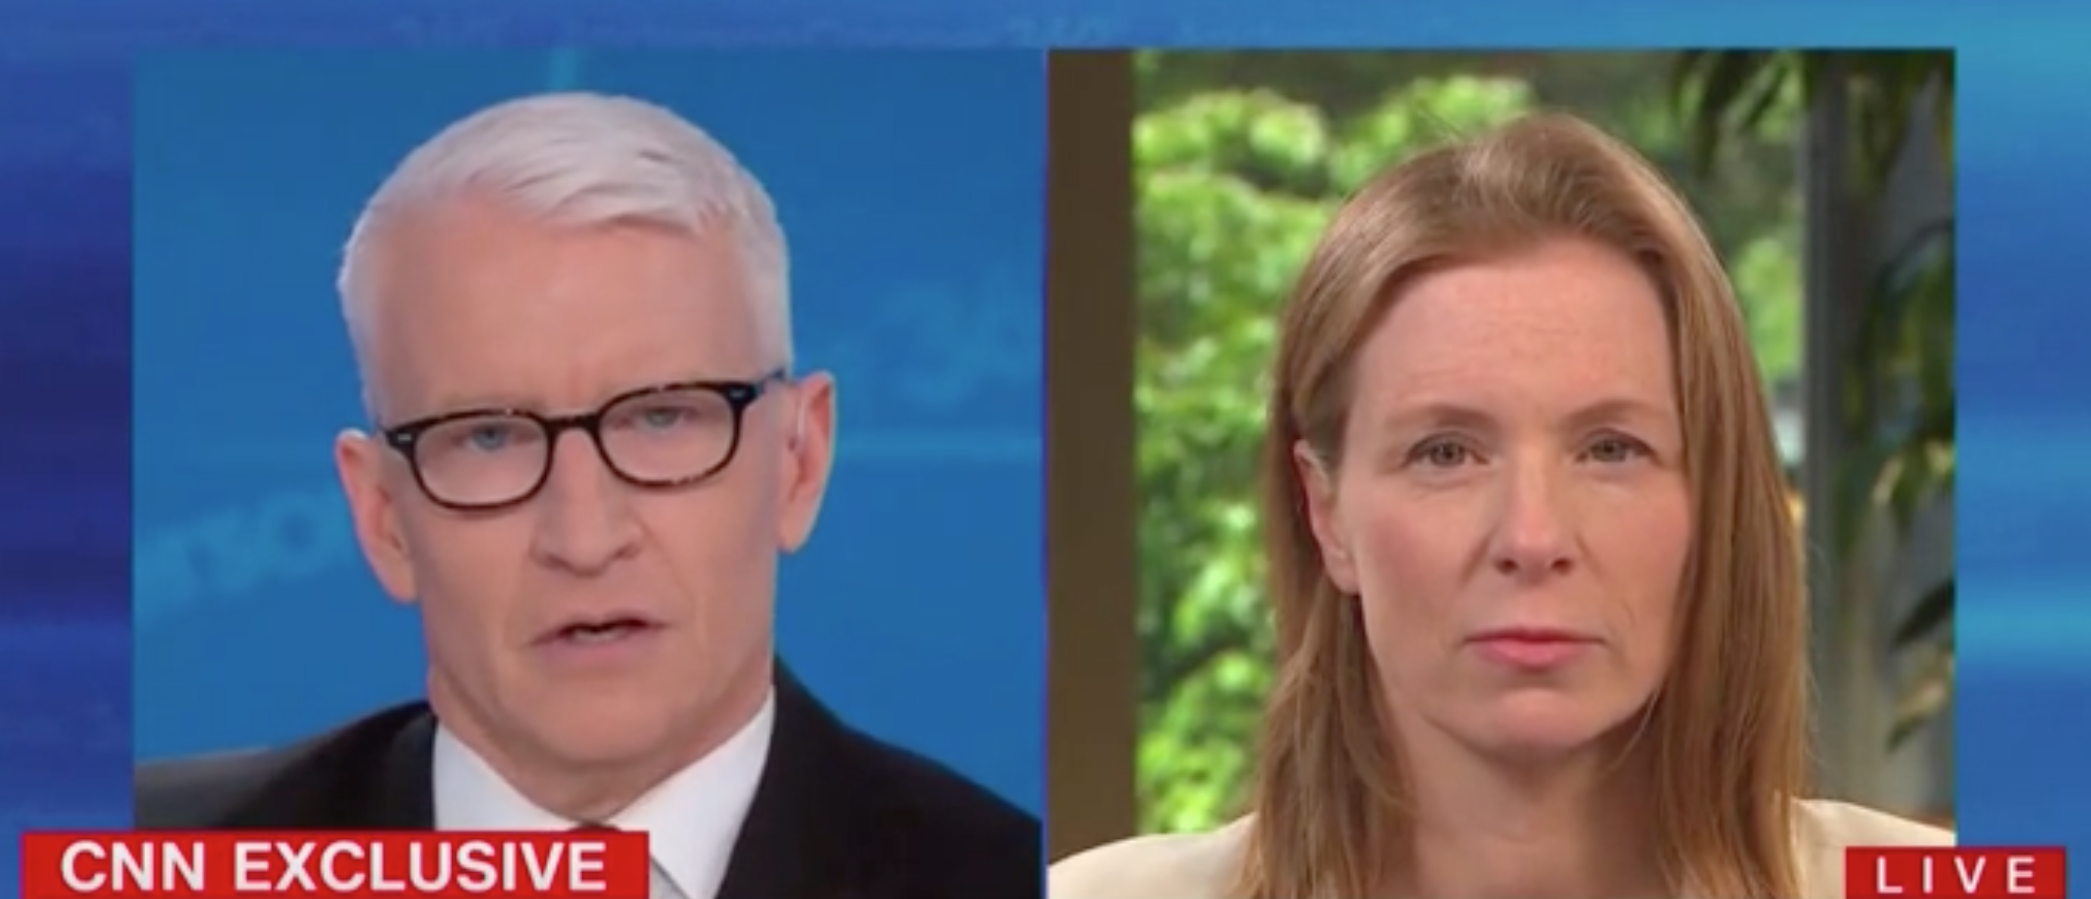 Anderson Cooper Blasts Facebook Over Fake Pelosi Video, Asks Exec If It Should 'Get Out Of The News Business'